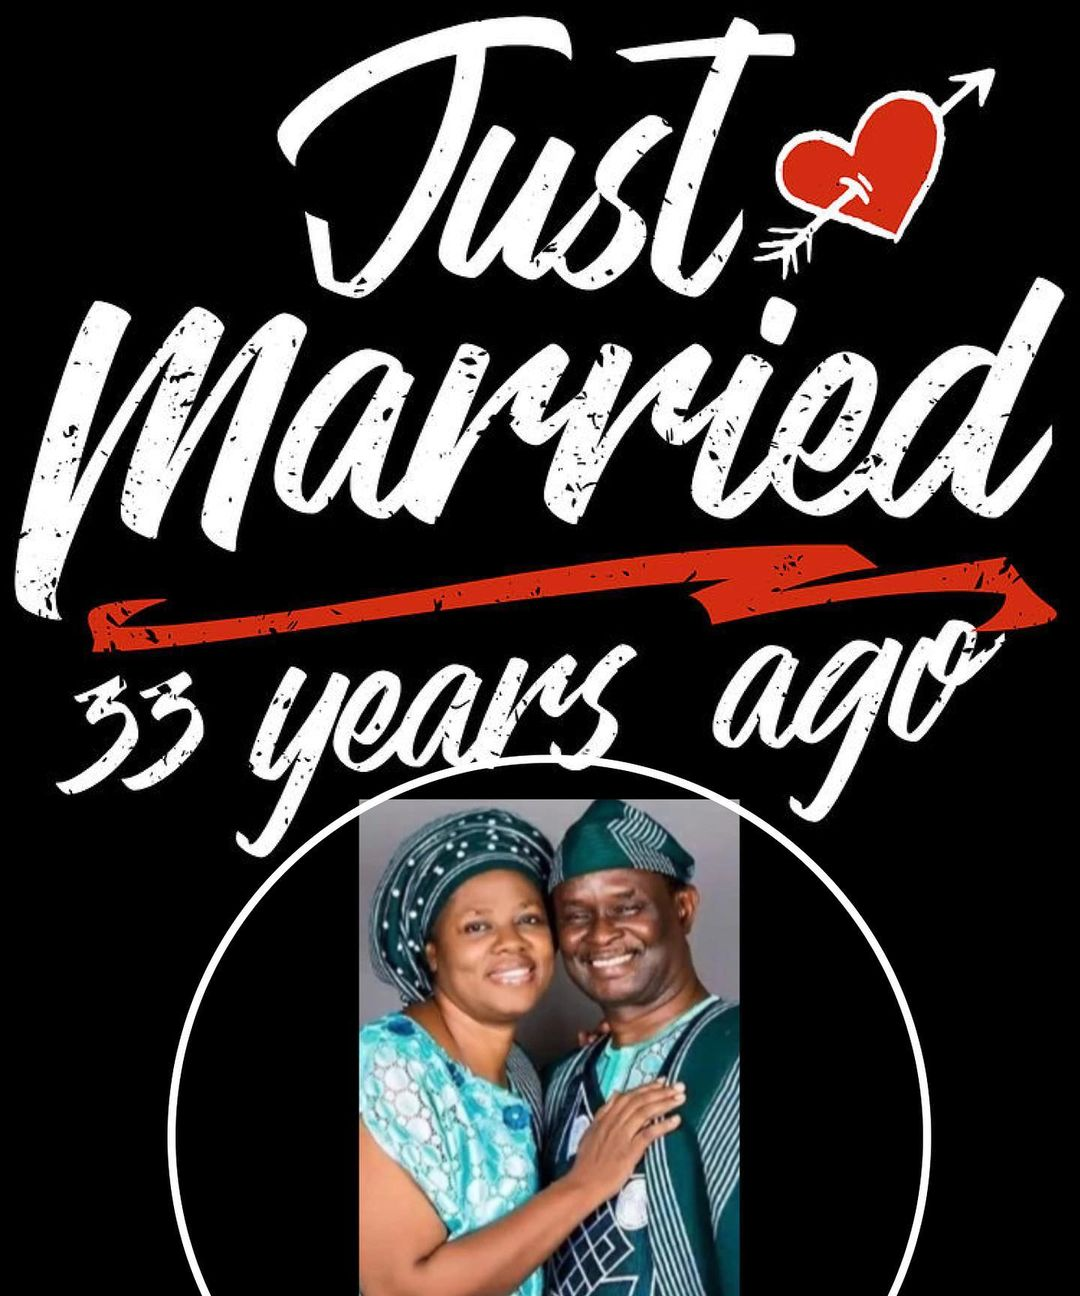 Actor, Mike Bamiloye and wife celebrate 33rd wedding anniversary with touching note